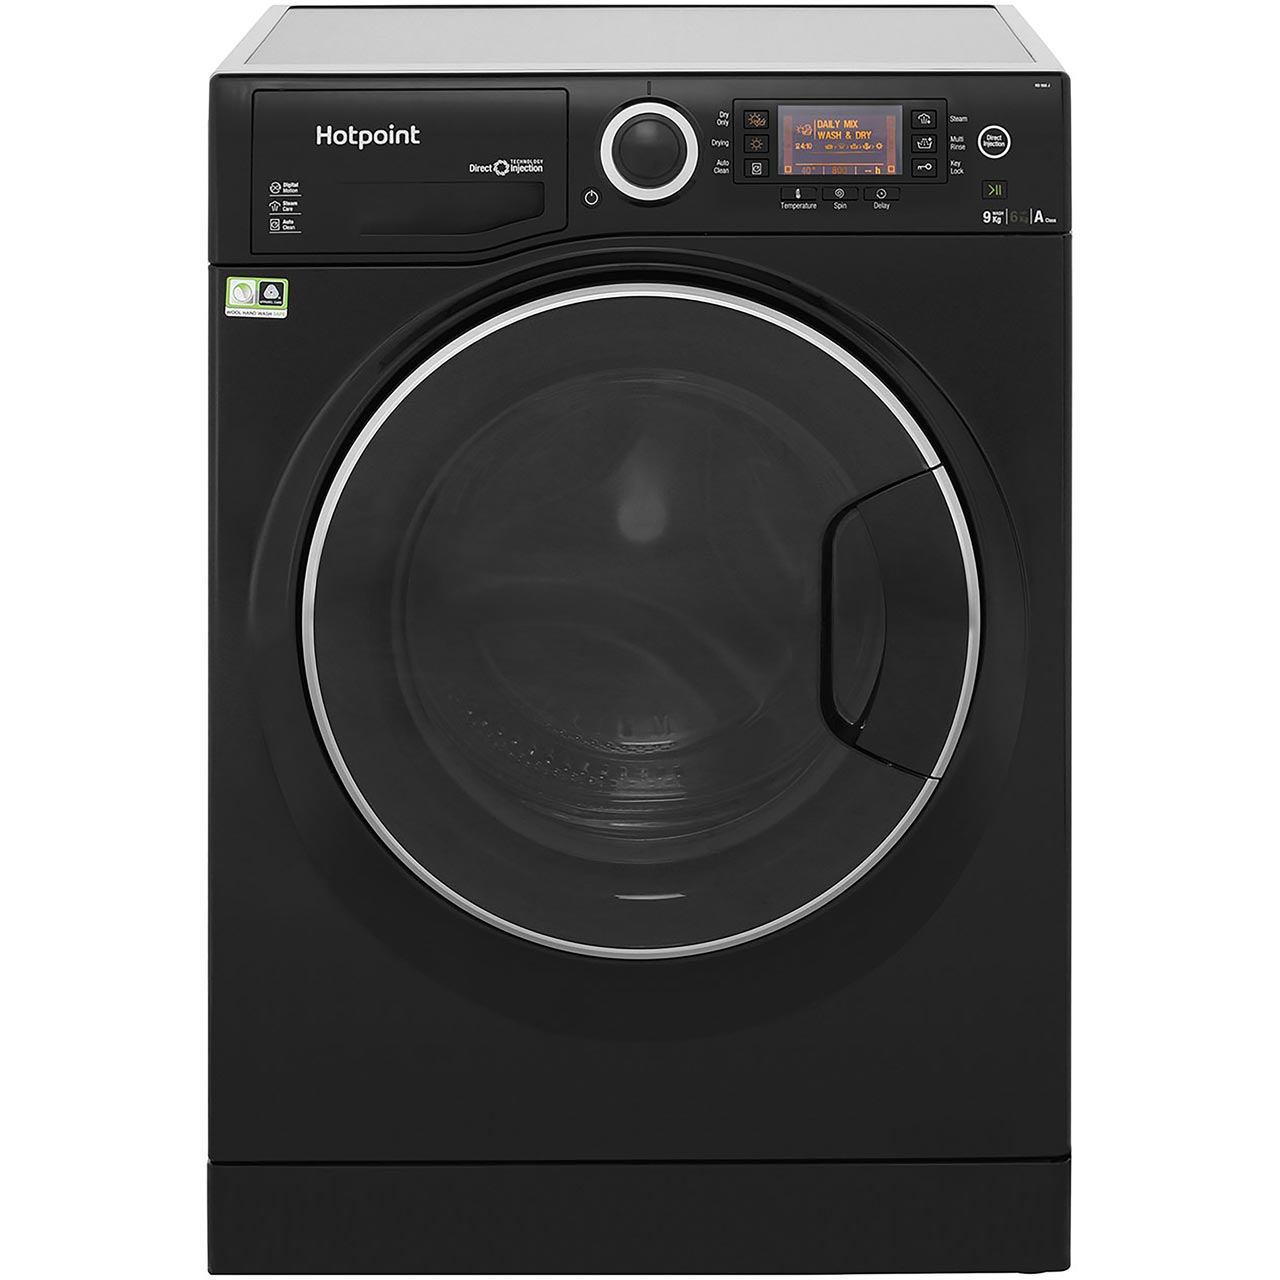 302519f41ae2 Details about Hotpoint RD966JKD Ultima S-Line Free Standing 9Kg A Washer  Dryer Black New from